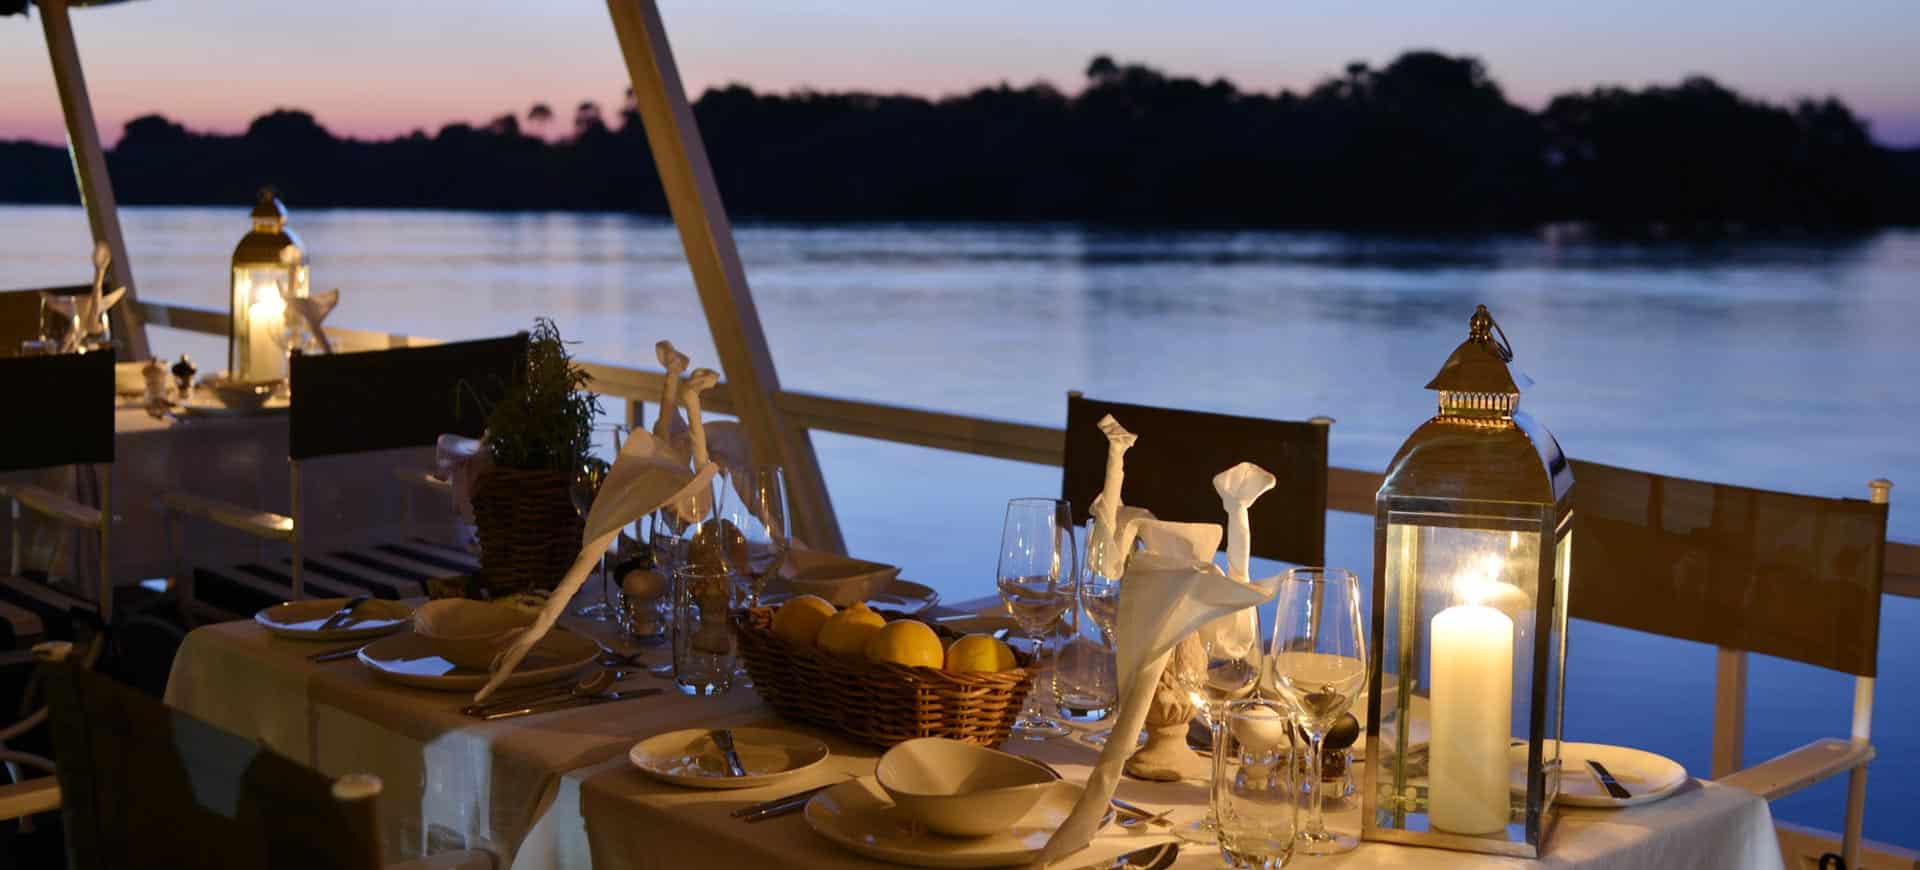 Zambezi River Dinner Cruise In Victoria Falls